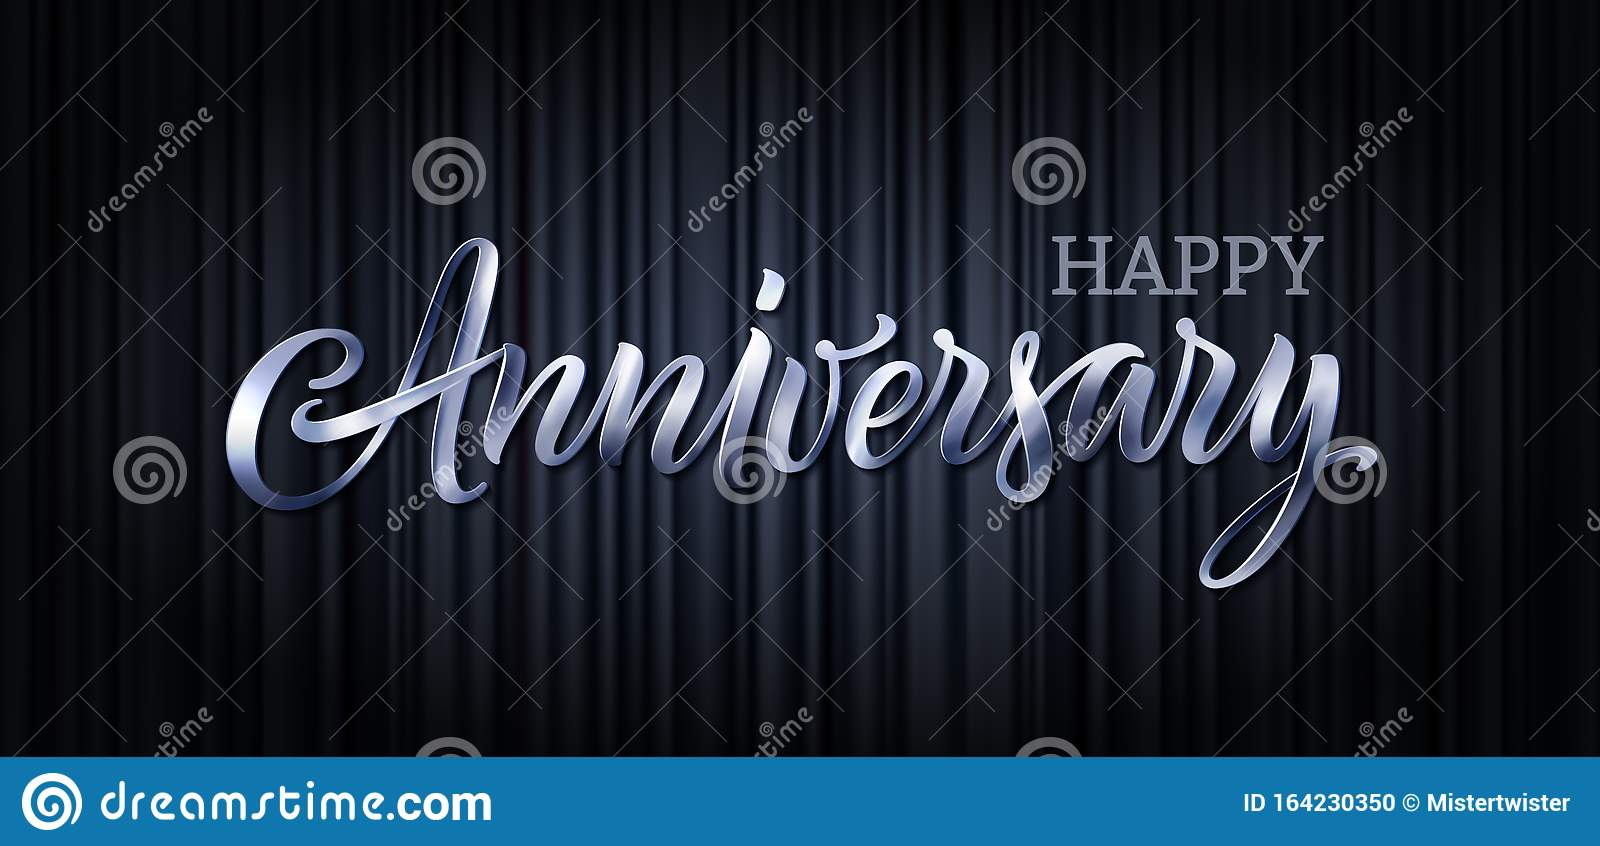 Anniversary Vector Text Banner Letter Poster Happy Anniversary